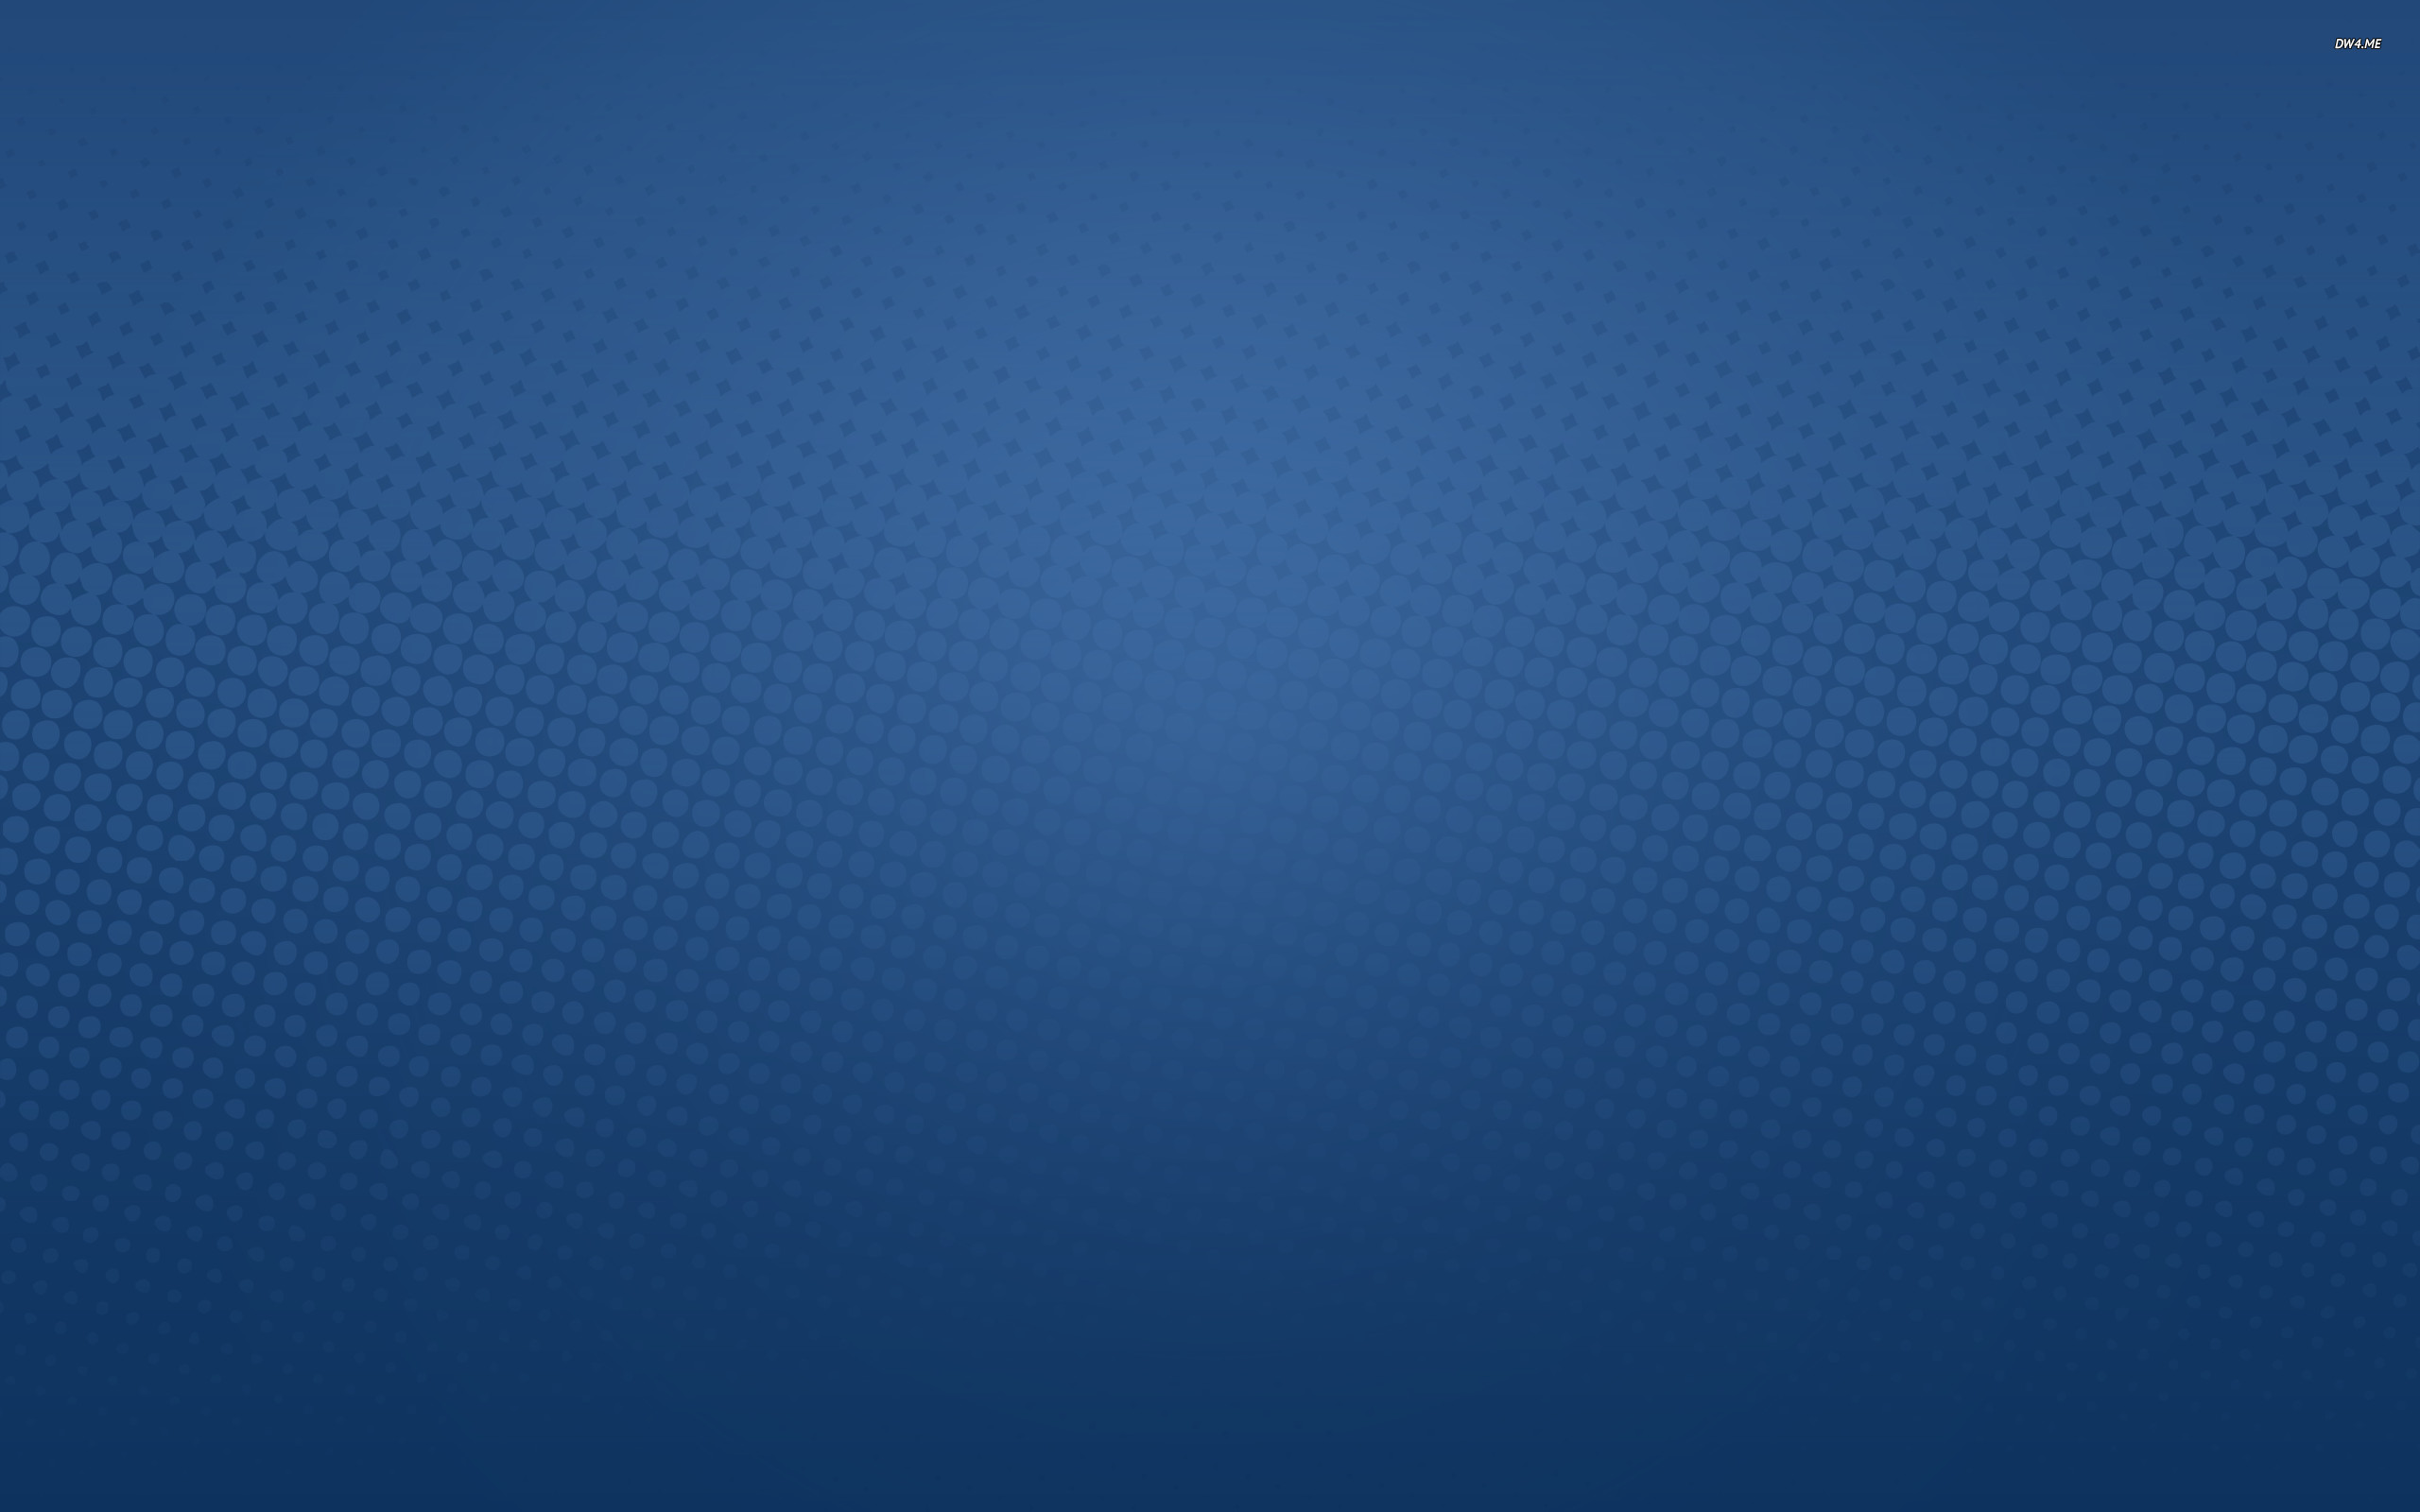 2560x1600 NMgnCP: Awesome Dark Blue Wallpapers, Carly Campanelli